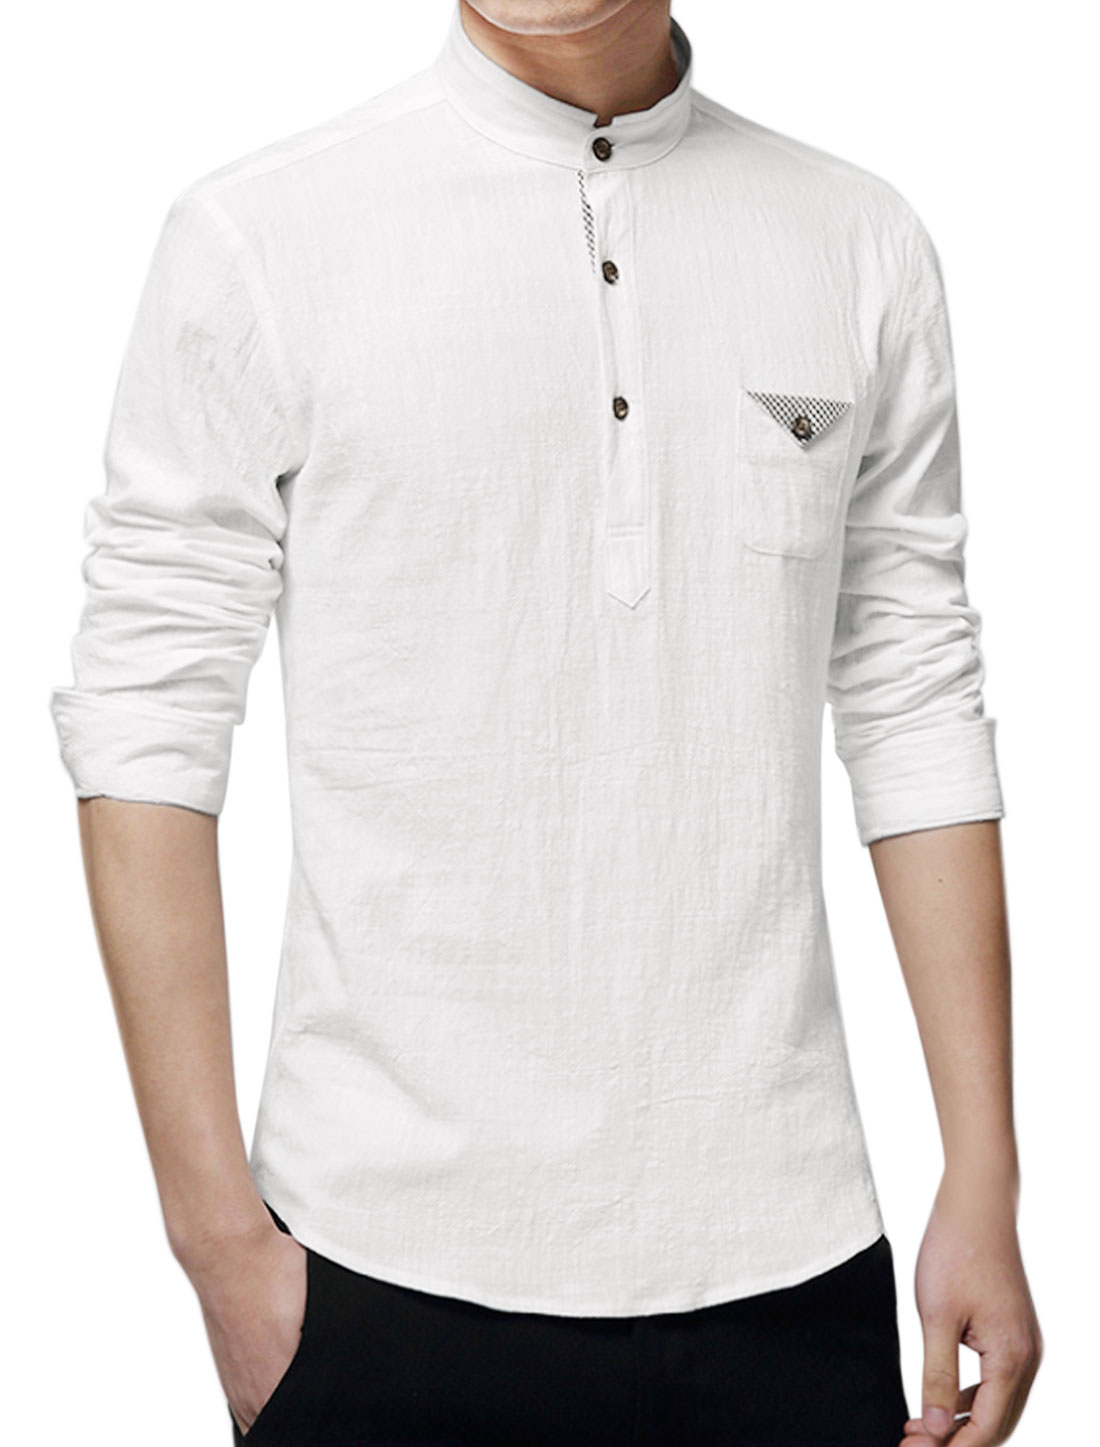 Men Mandarin Collar One Pocket Buttoned Slim Fit Shirt White M